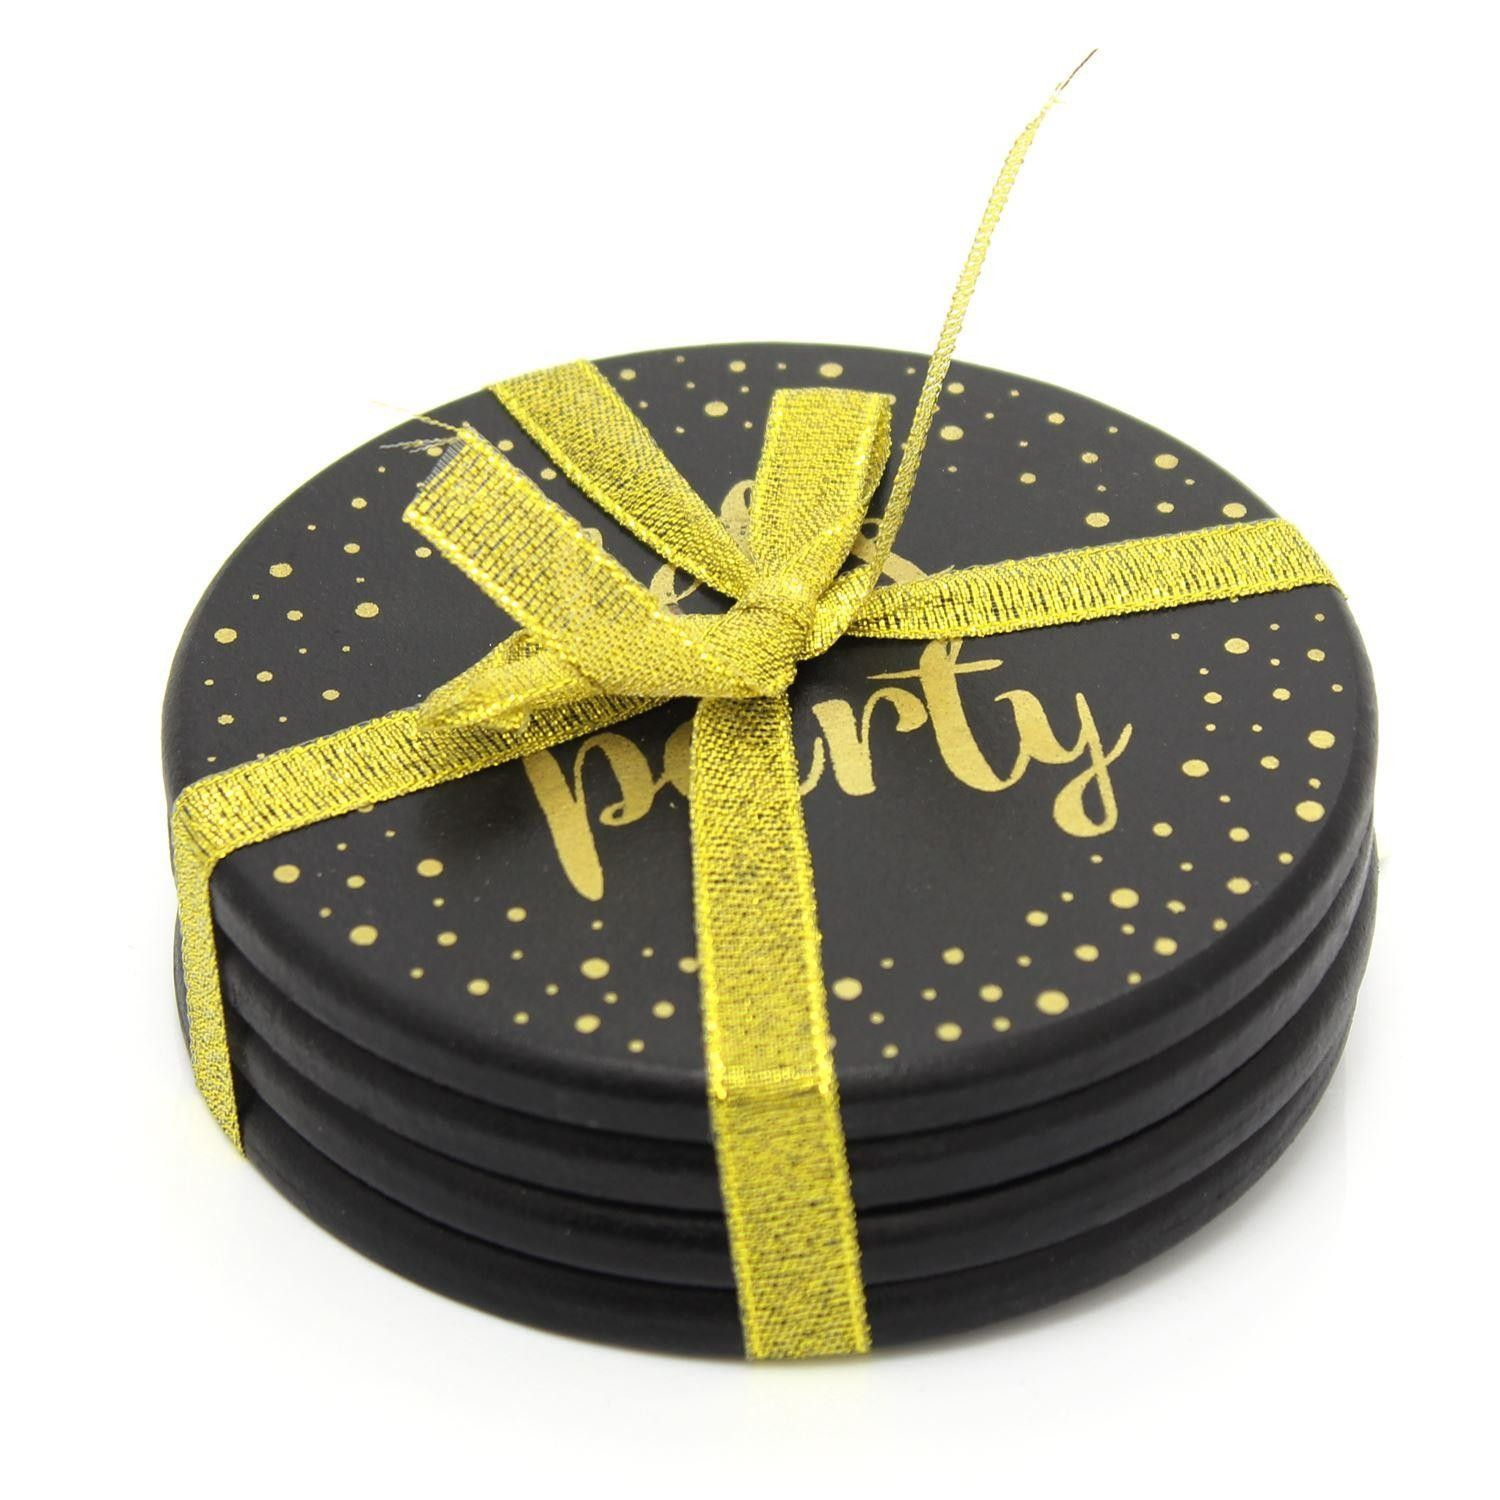 Gorgeous Set Of 4 Black And Gold Round Drinks Coasters Cup Mug Table Mats Drink Coasters Coasters Mugs